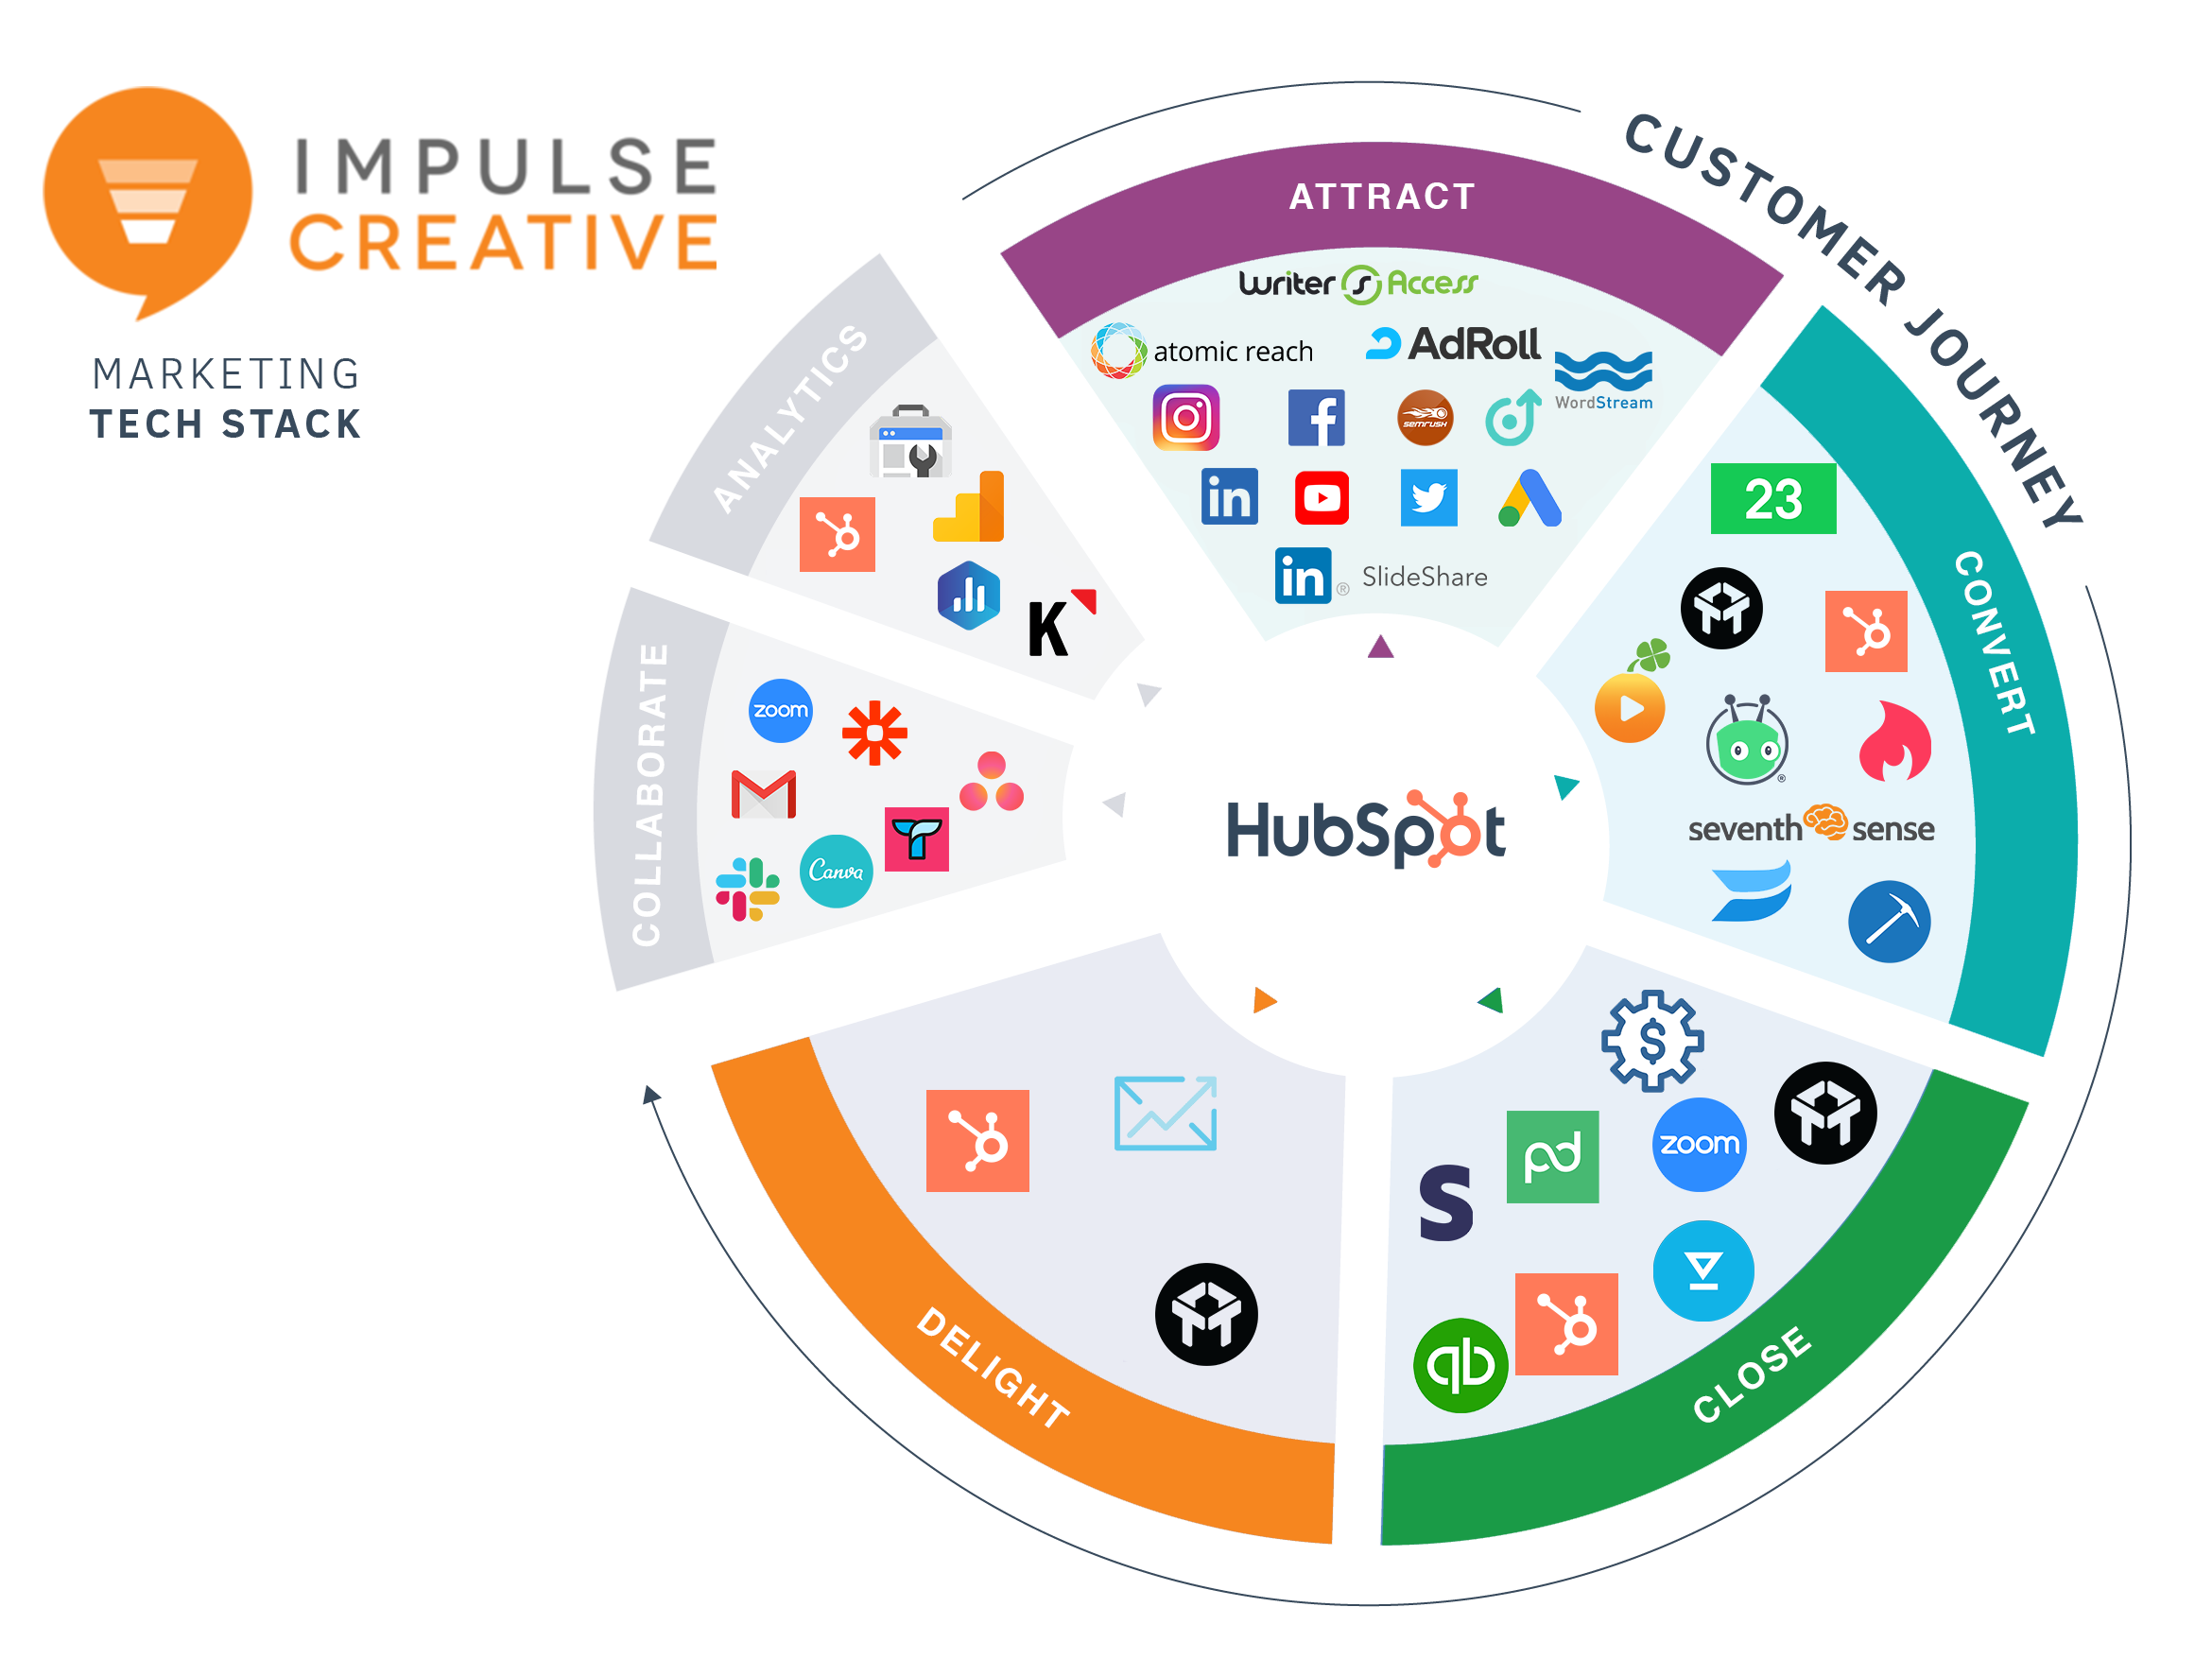 Impulse Creative Tech Stack